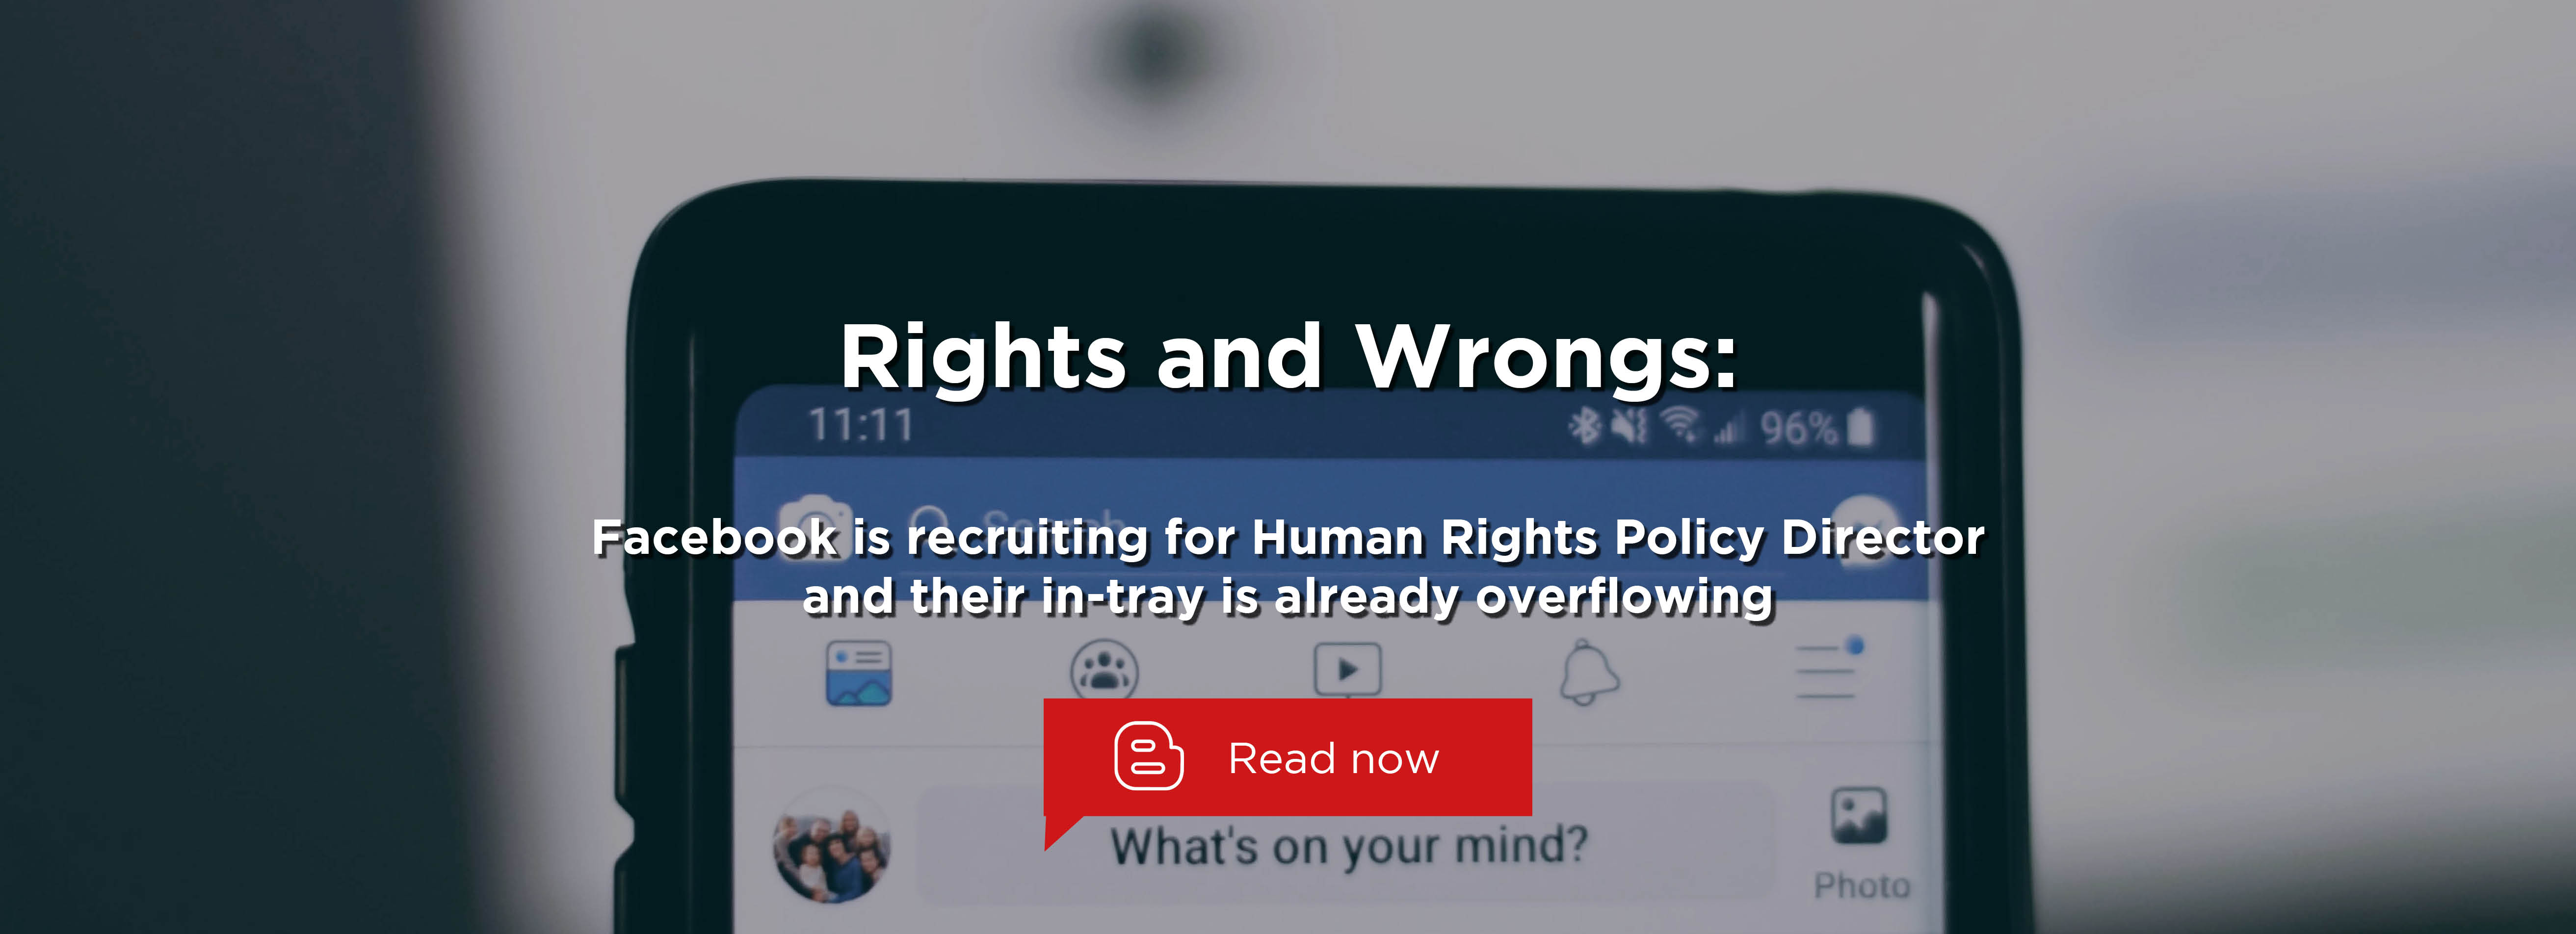 Rights and Wrongs: A Job Description for Facebook's Human Rights Policy Director